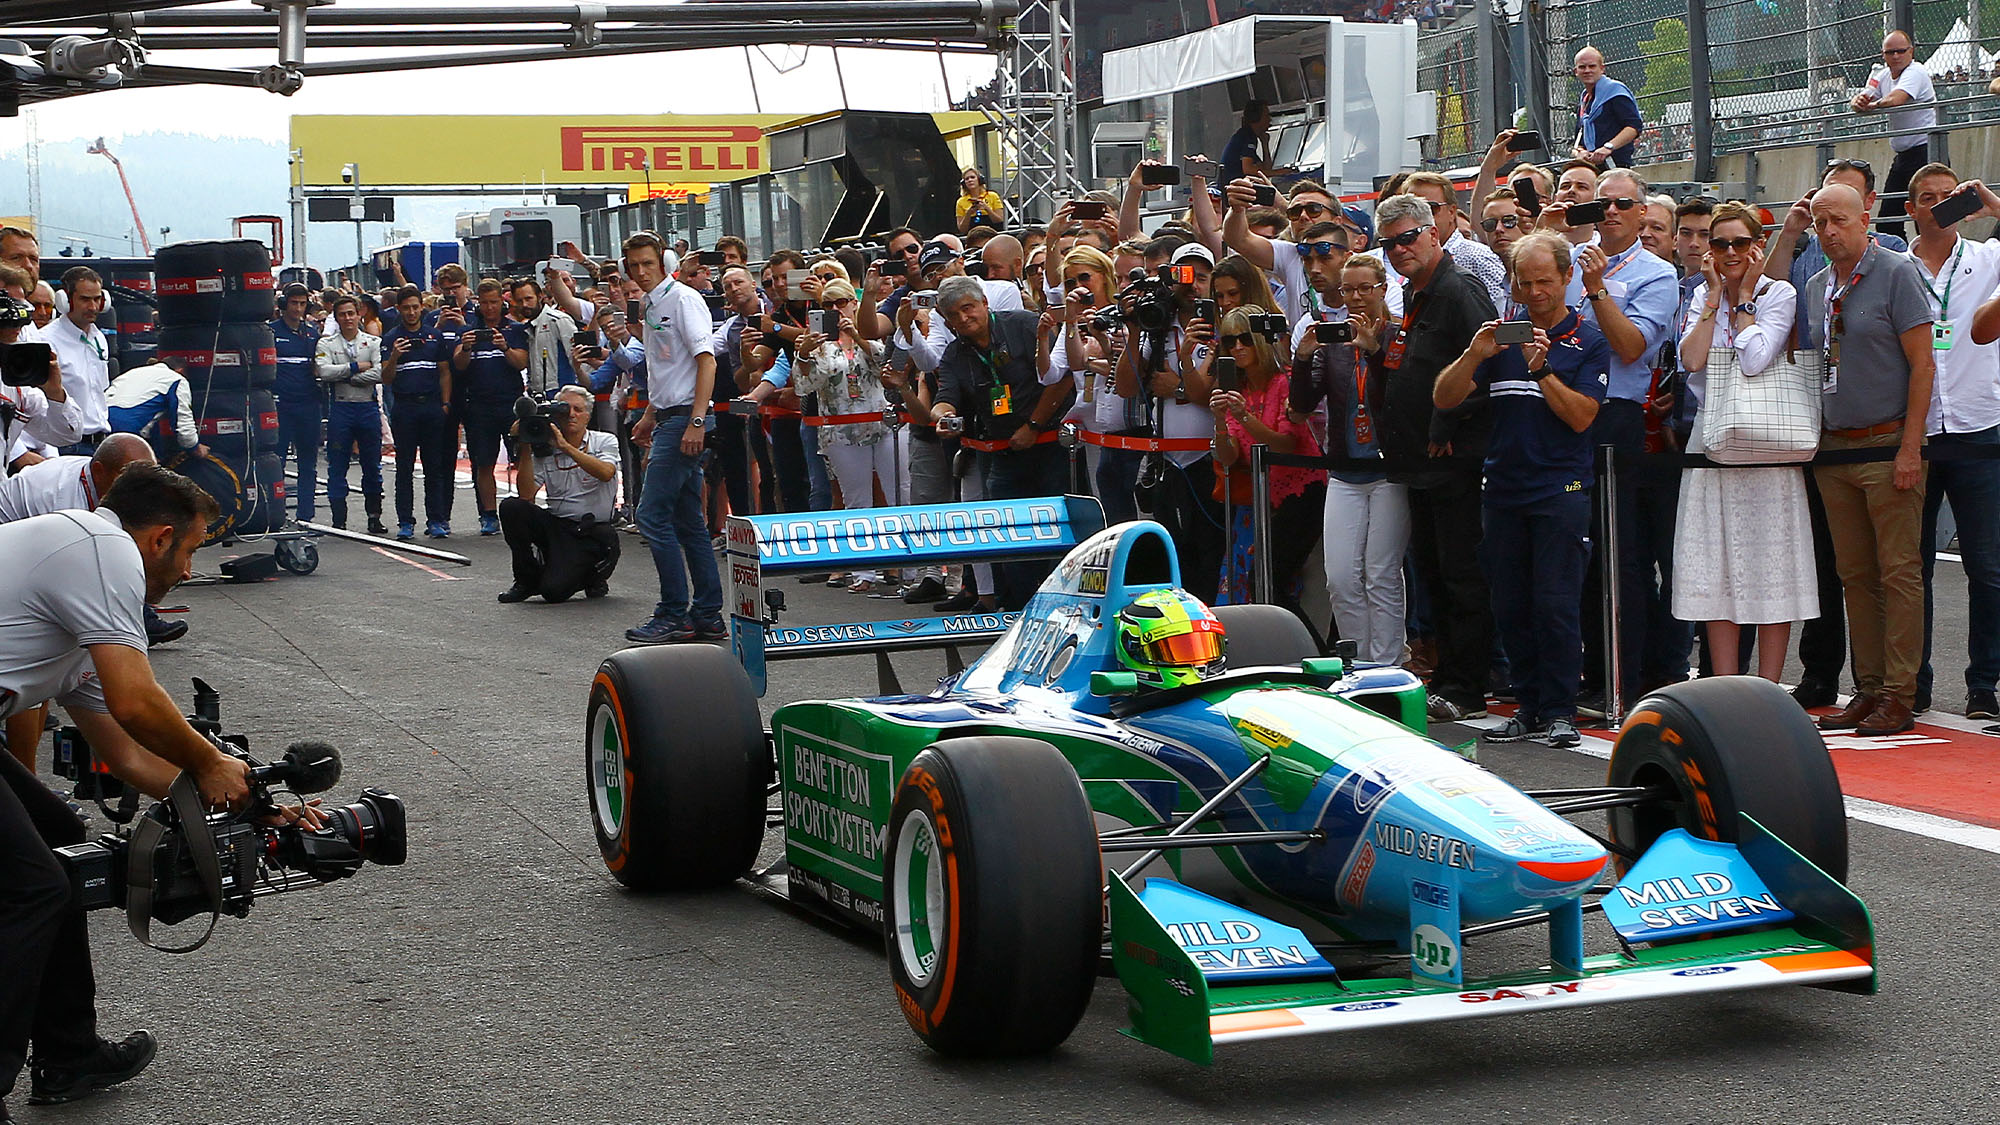 Mick Schumacher Benetton